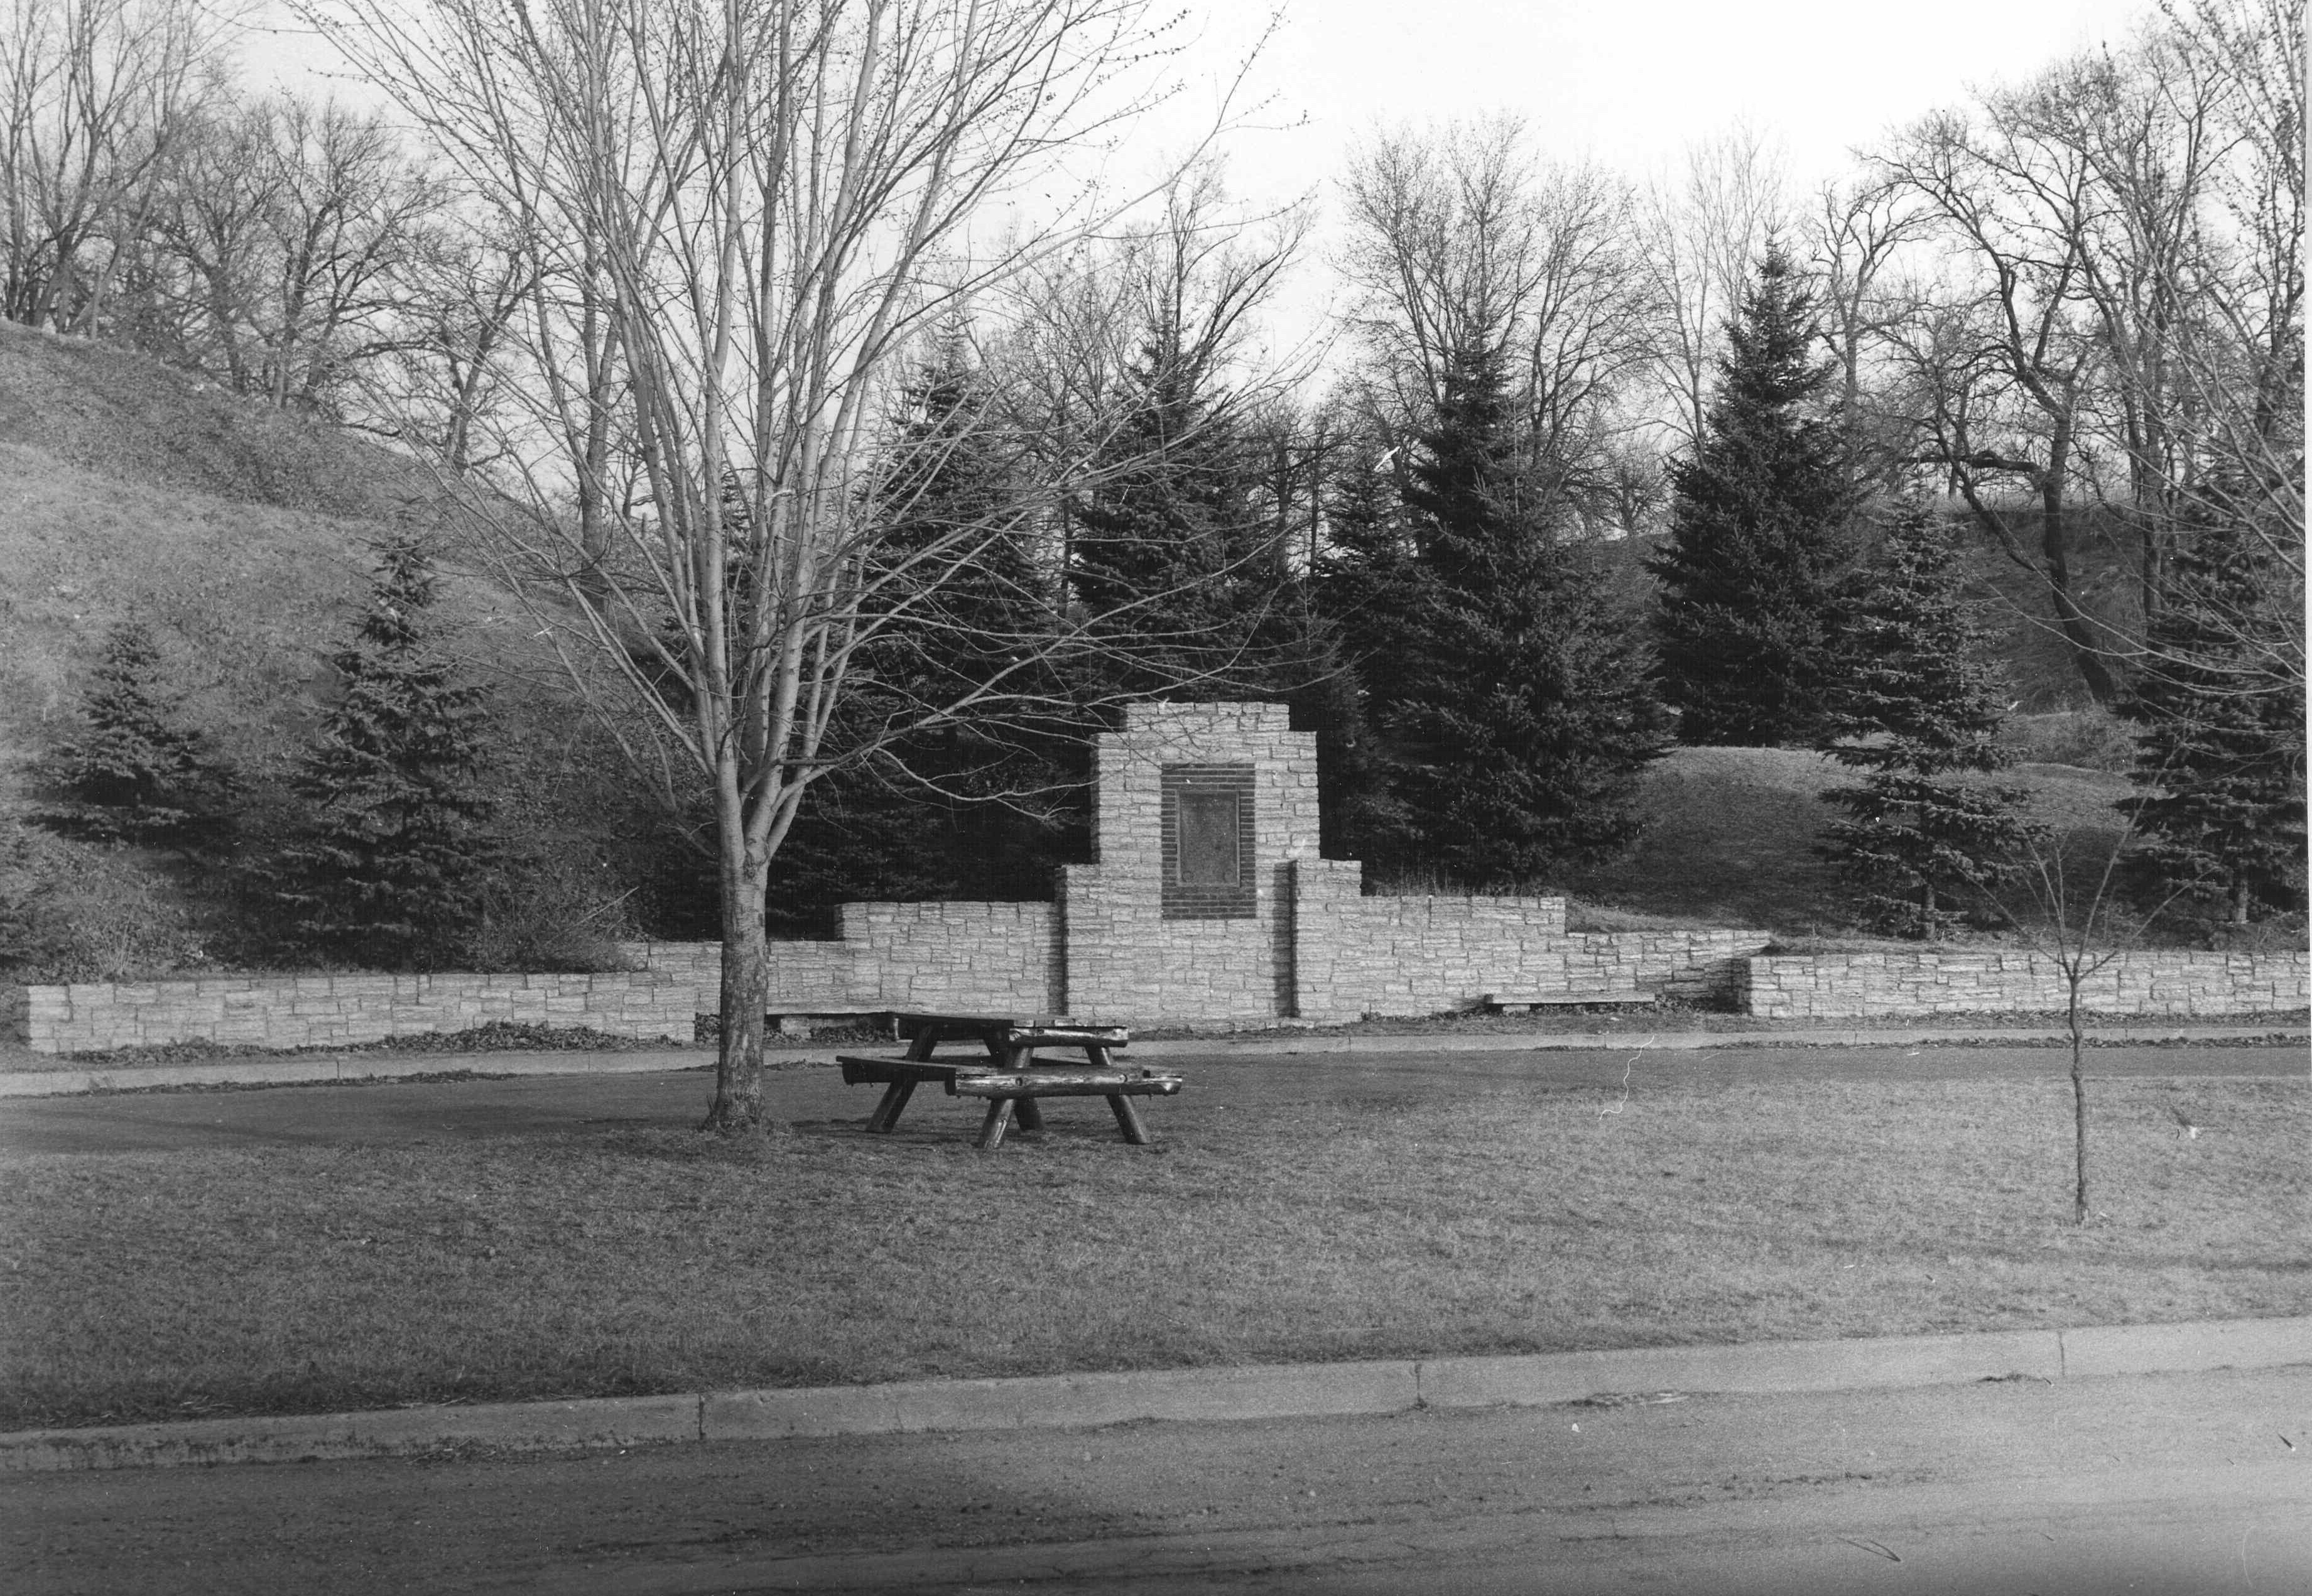 This Chaska Historic Marker first appeared in the 1940s. It is pictured here shortly after original construction in 1942.